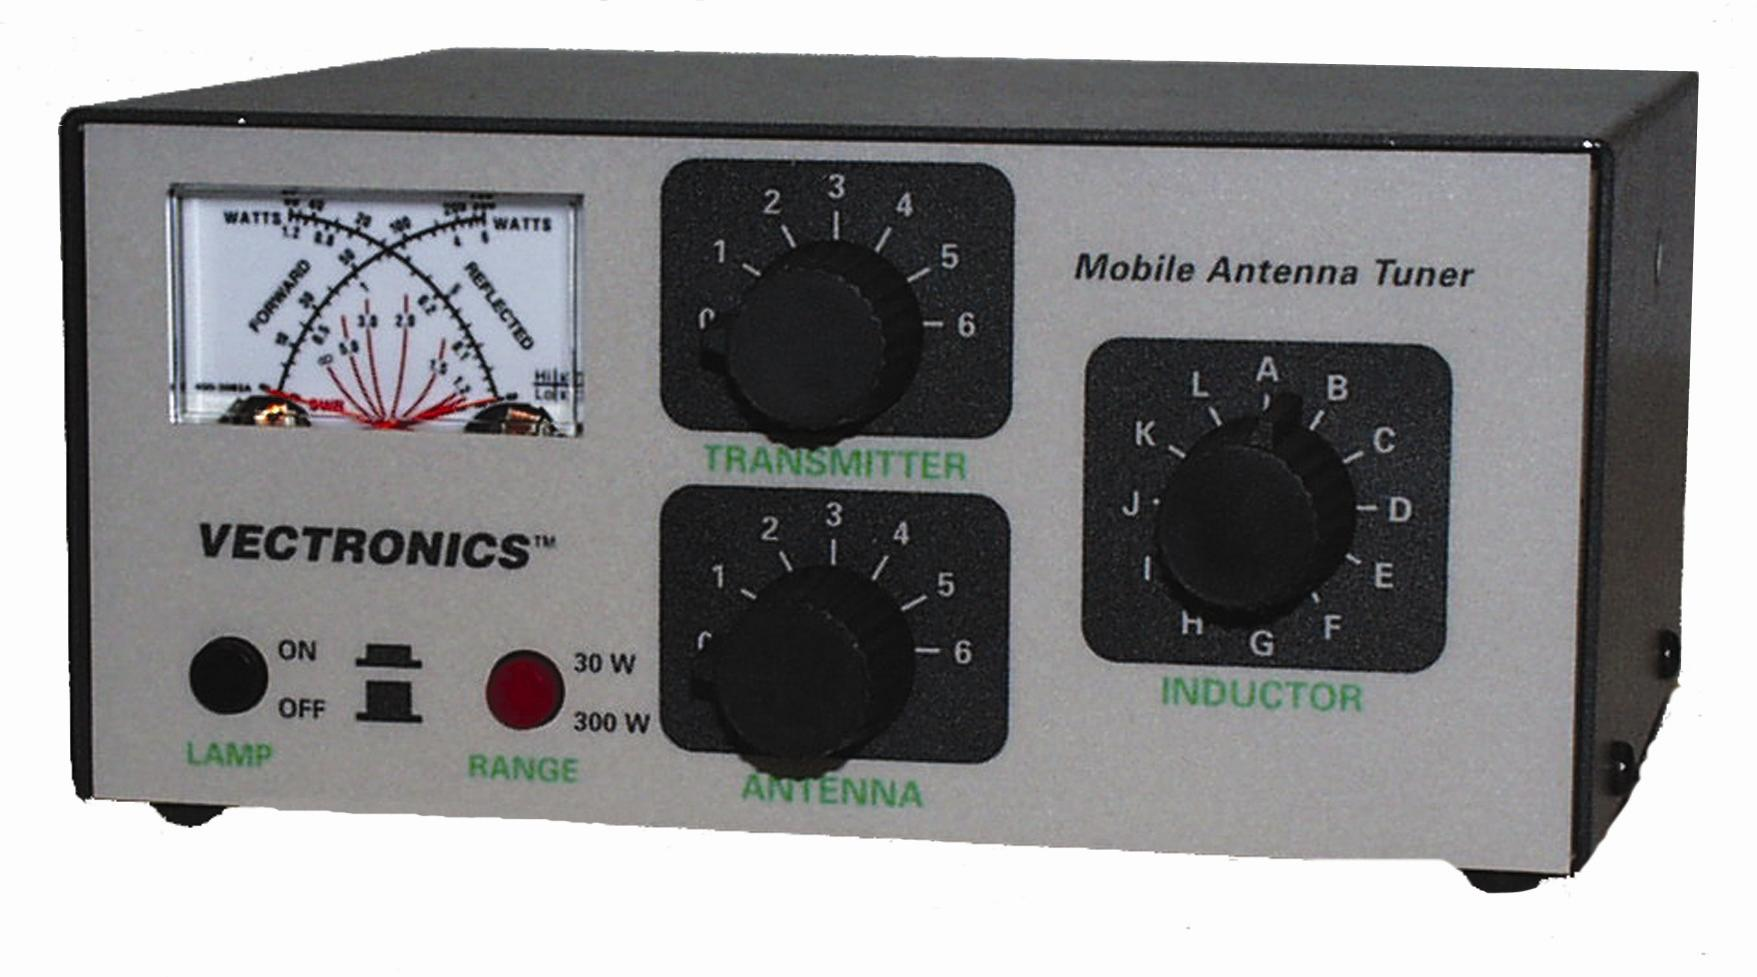 VC-300M Vectronics 1.8-30MHz Mobile ATU